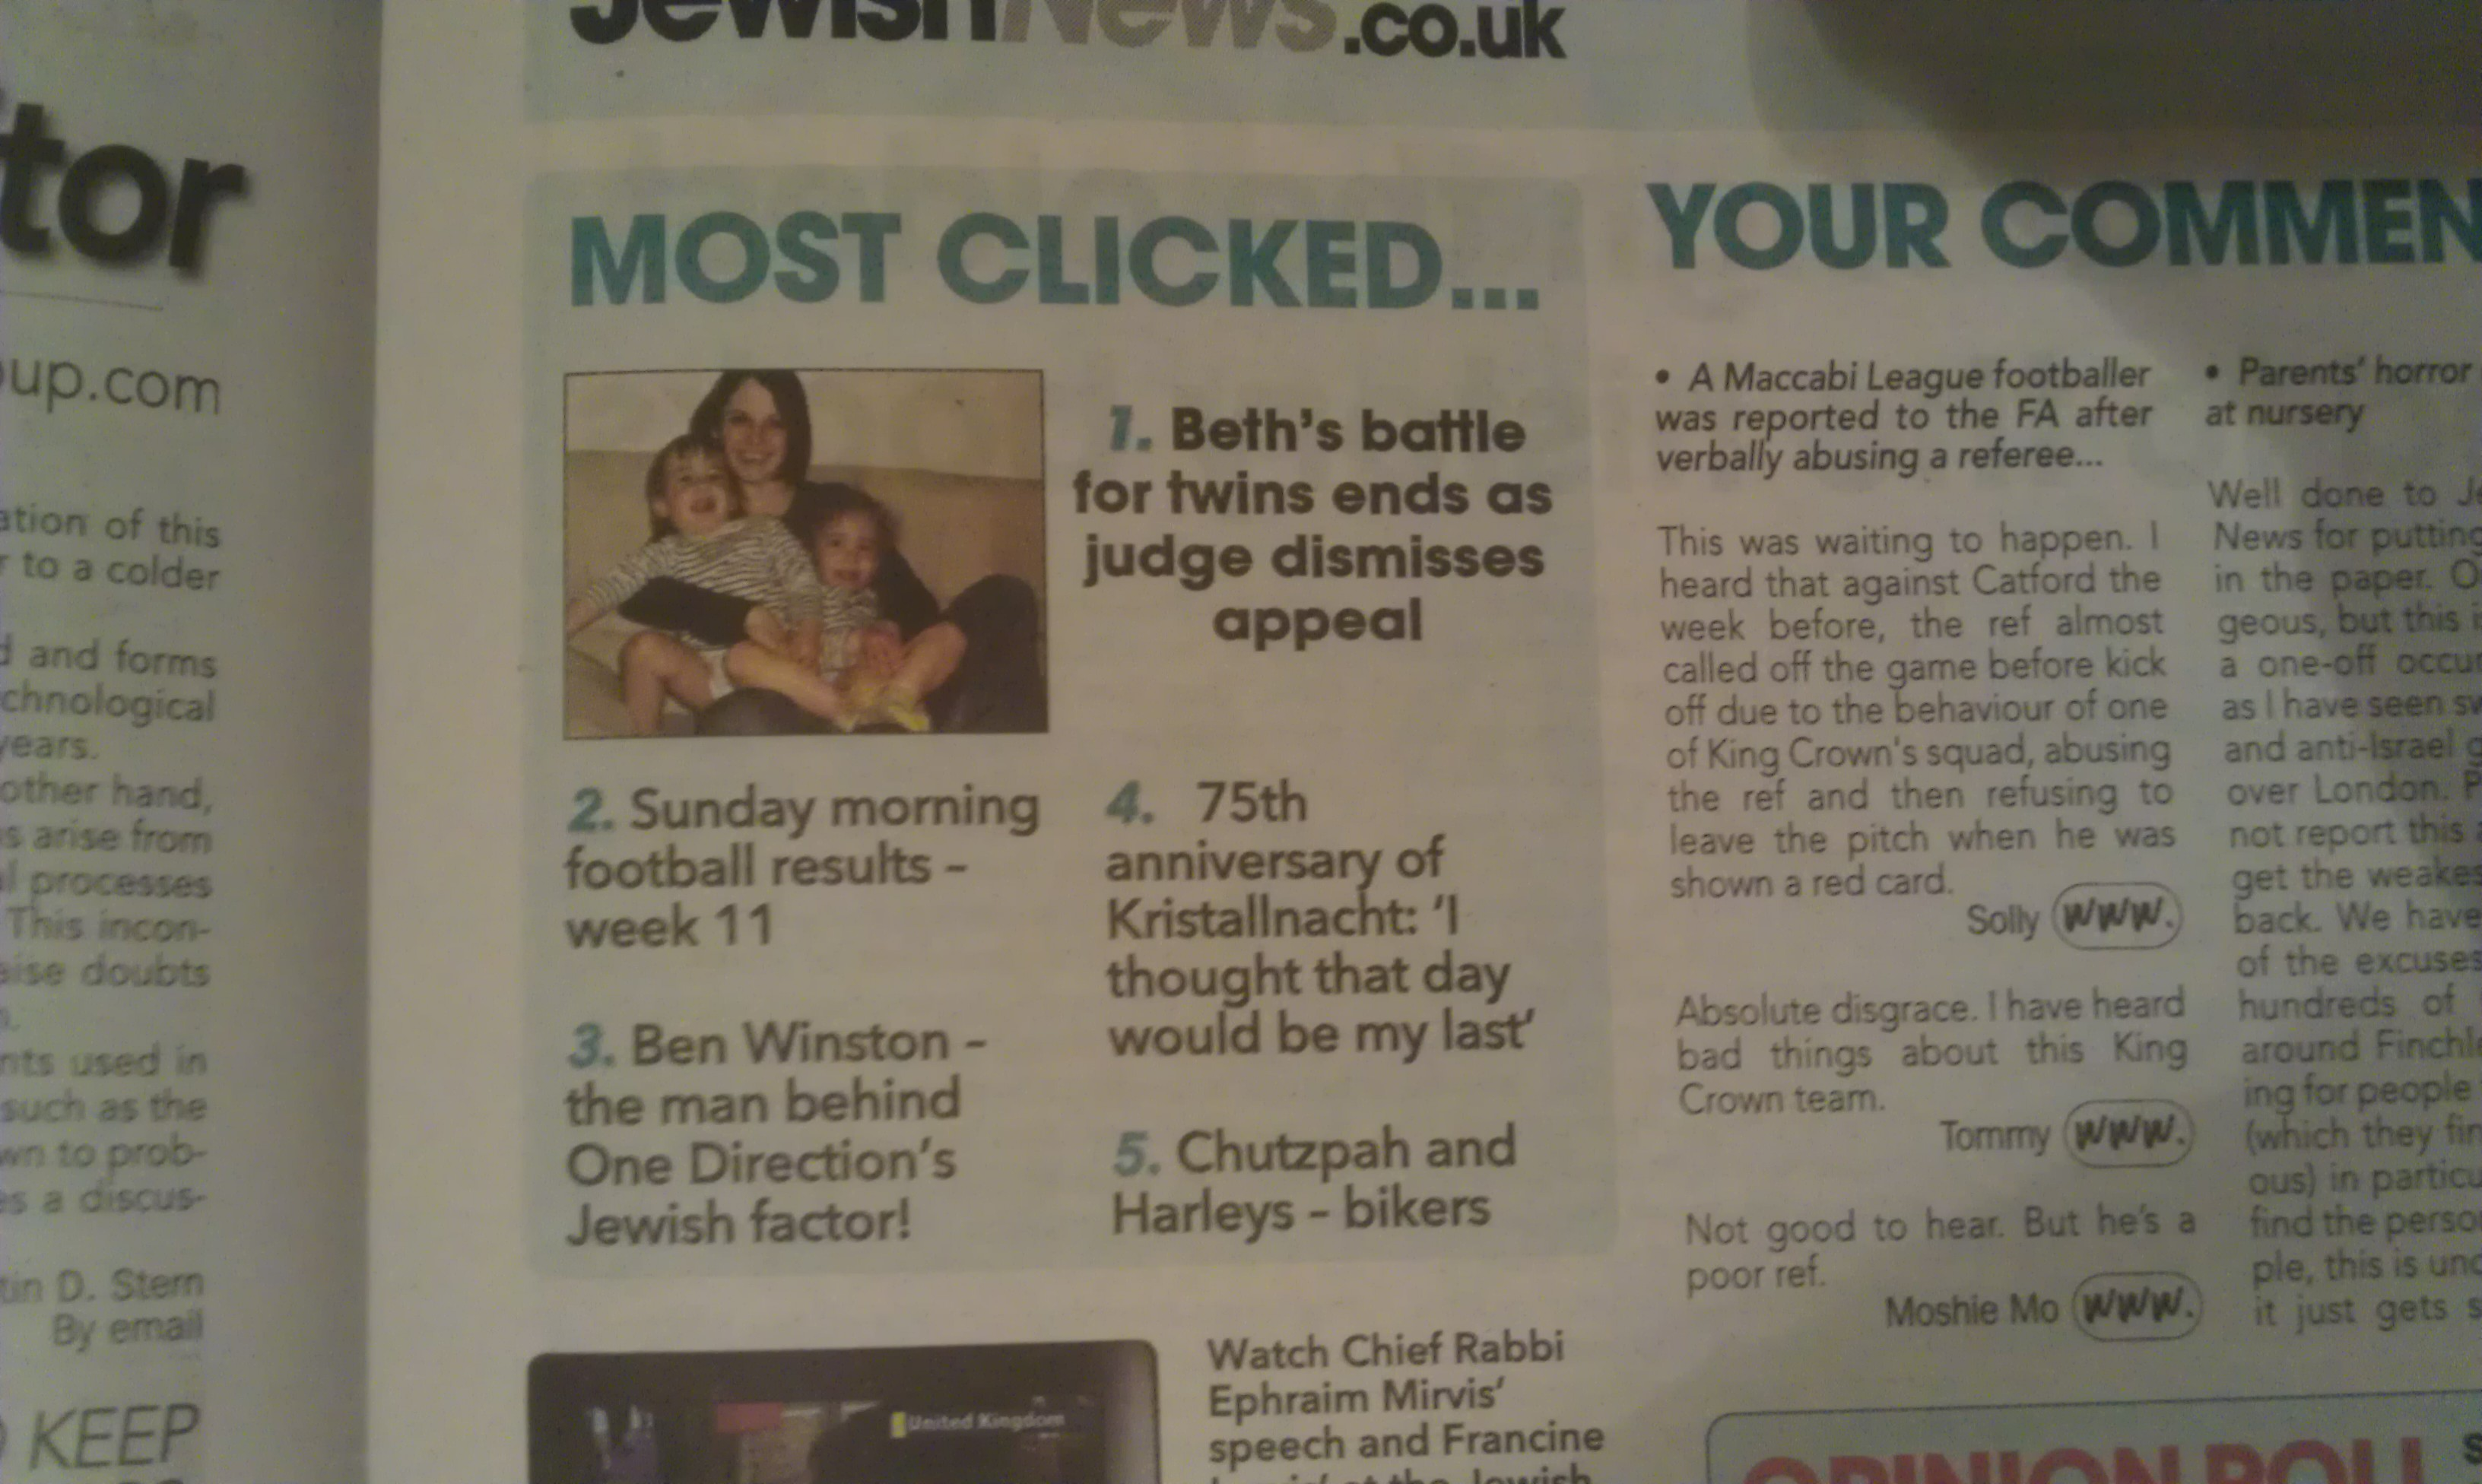 Most Clicked Item on the Jewish News website